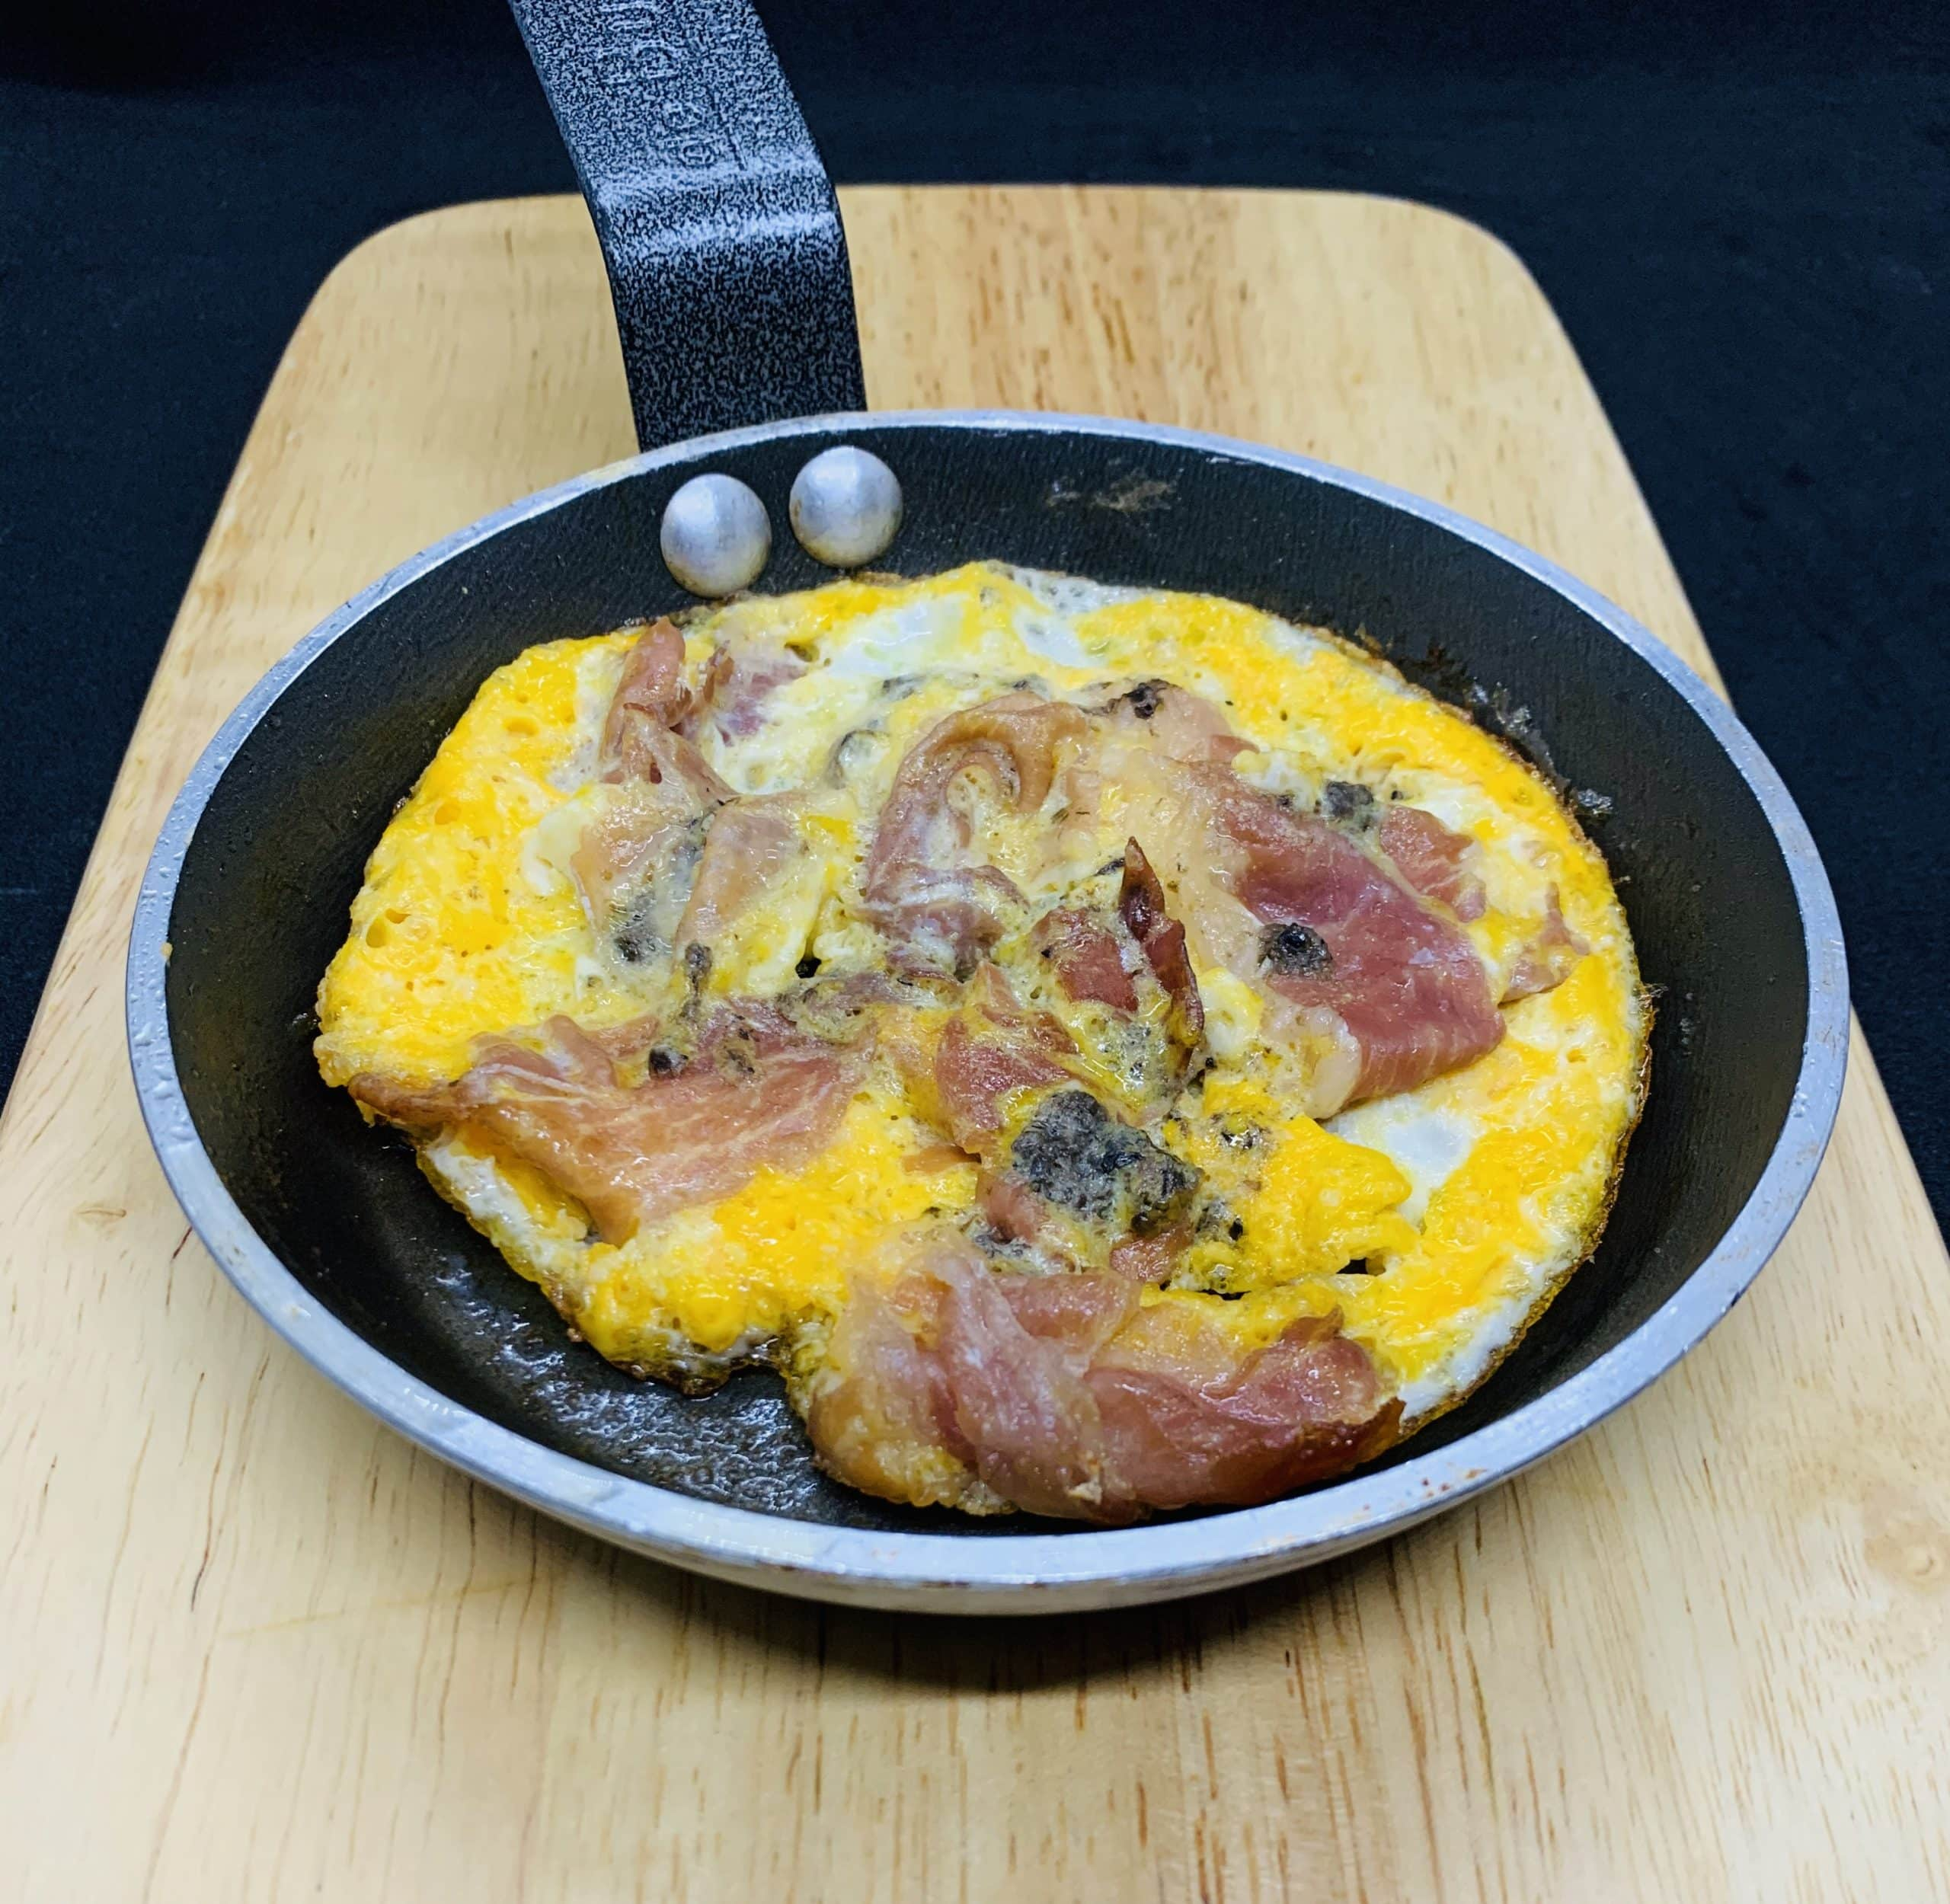 Baked Mini Omelette 'w' Parma Ham